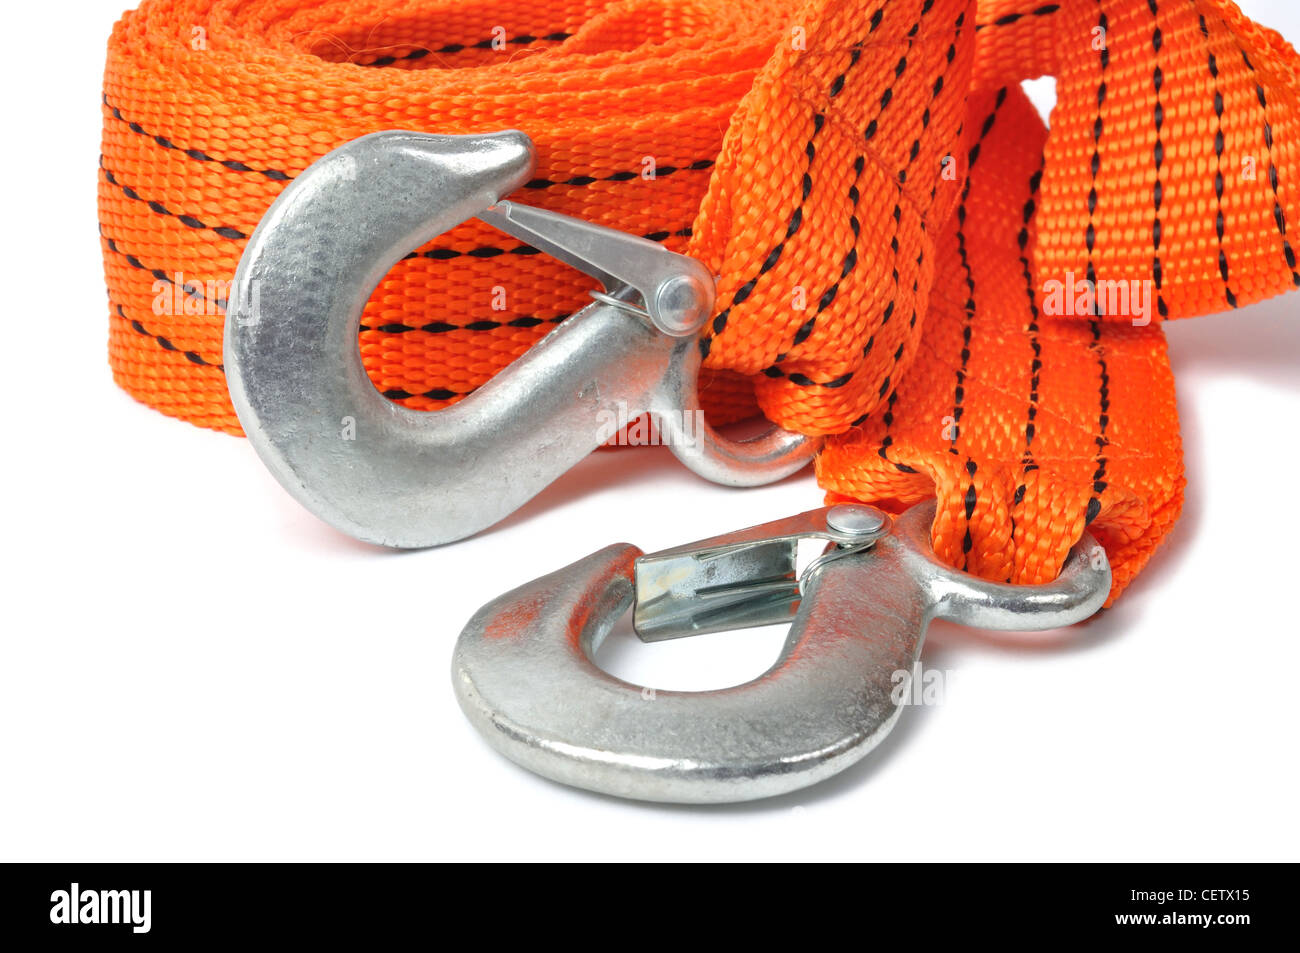 Towing Rope - Stock Image